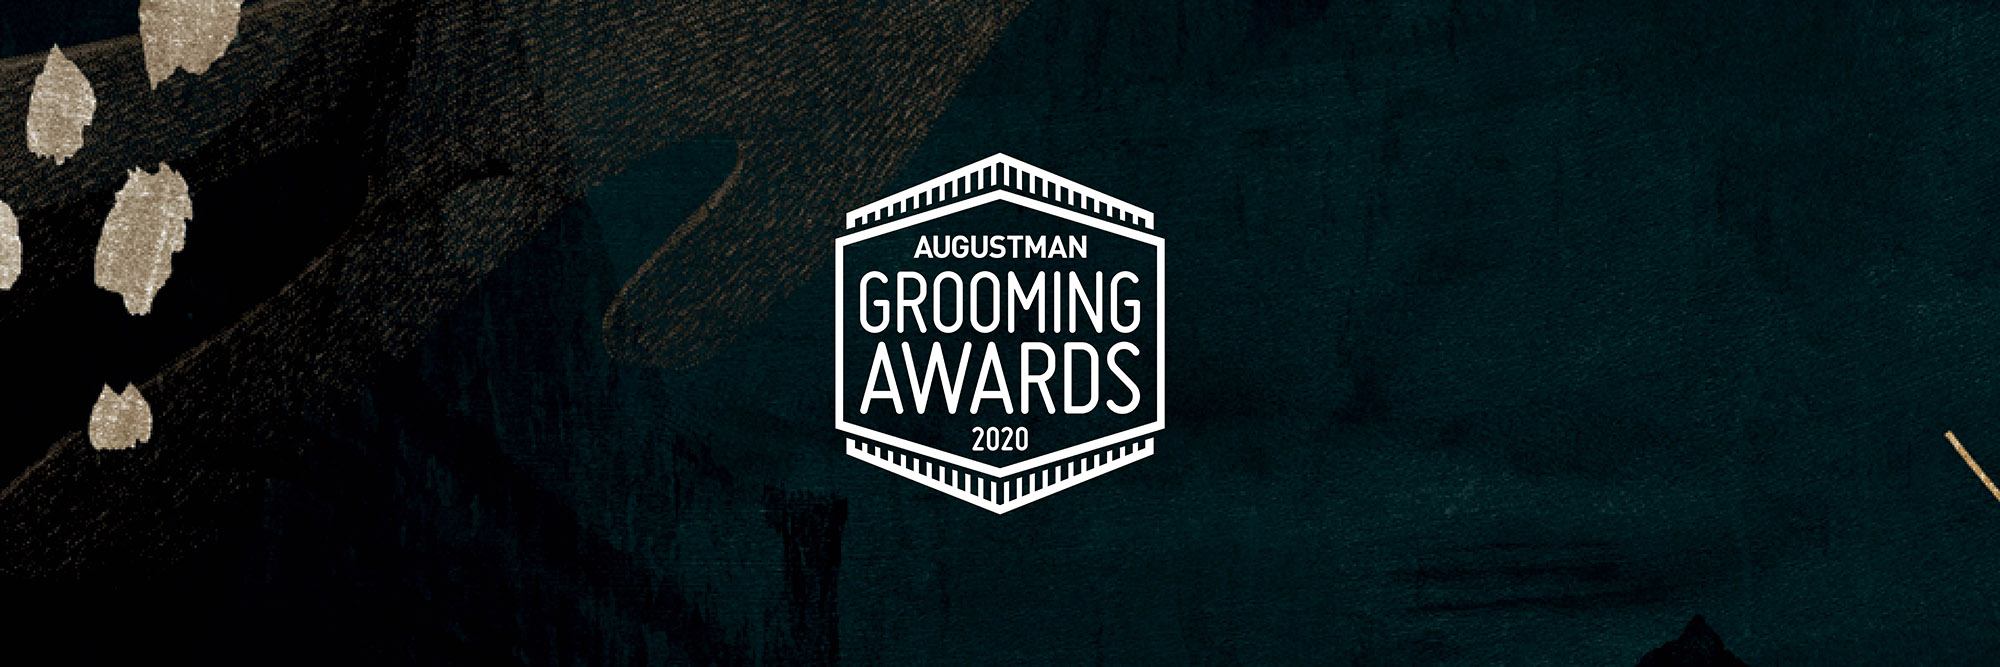 AUGUSTMAN Grooming Awards 2020 Part I: Best Facial Products For Gentlemen